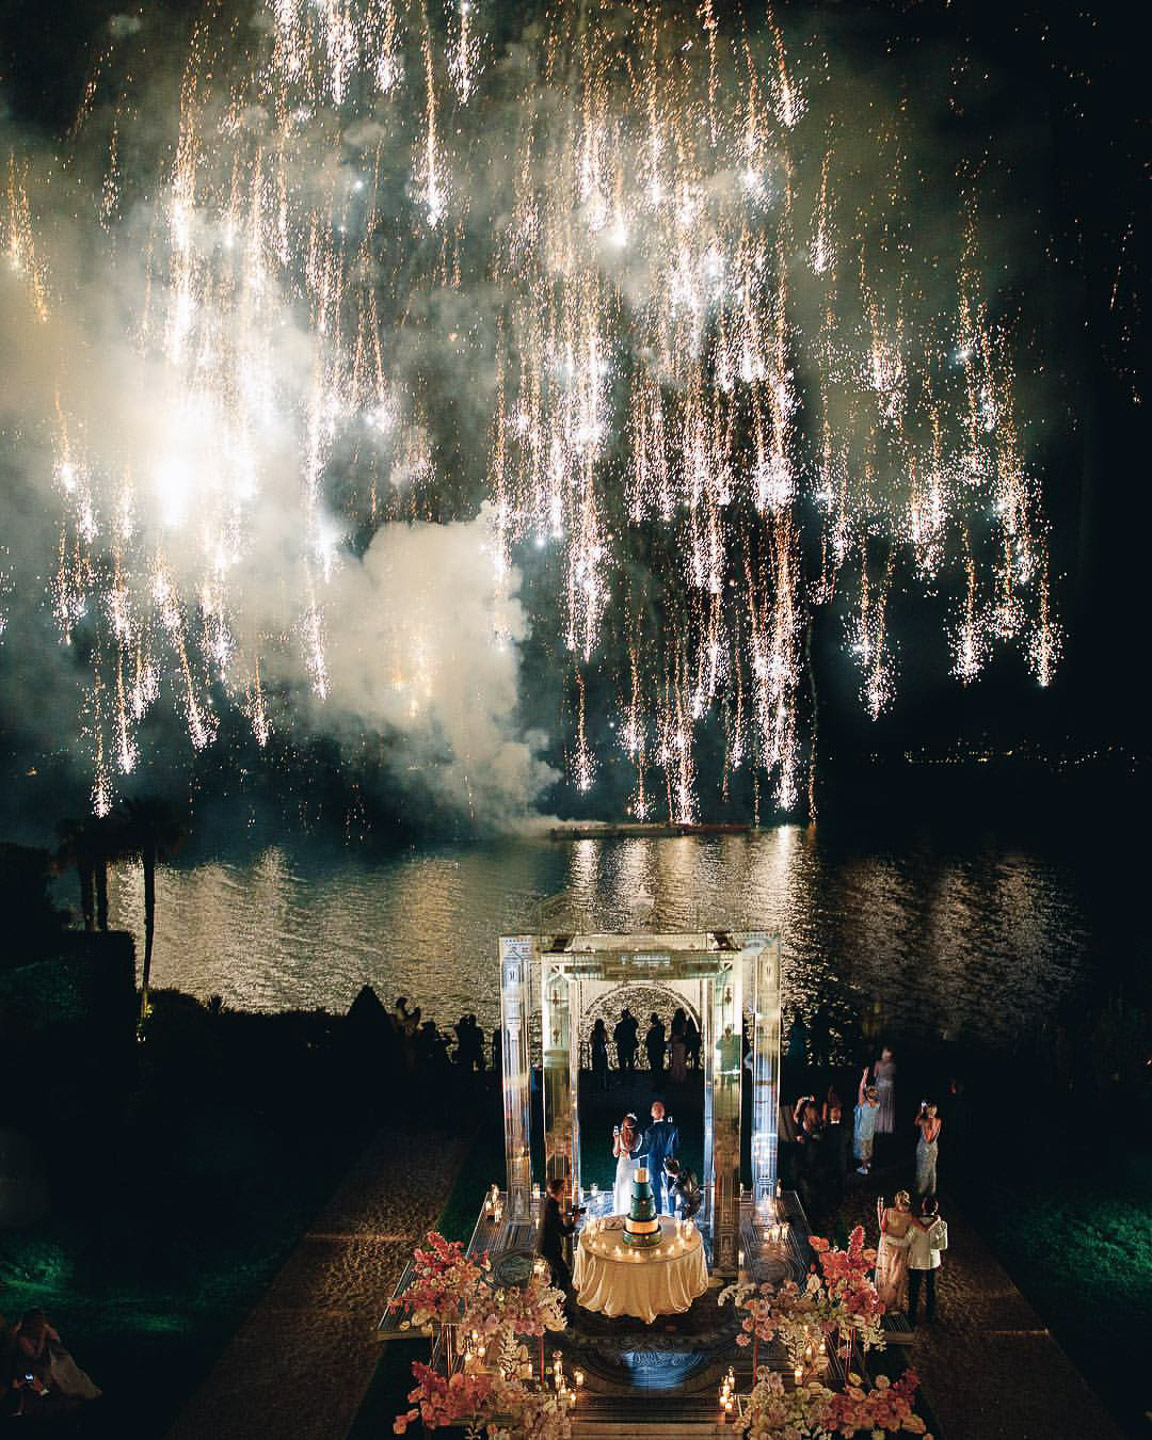 Villa Balbiano luxury property Lake Como Italy exclusive private rental rental unique intimate weddings event venue ceremony stunning best water view fireworks happy bride groom